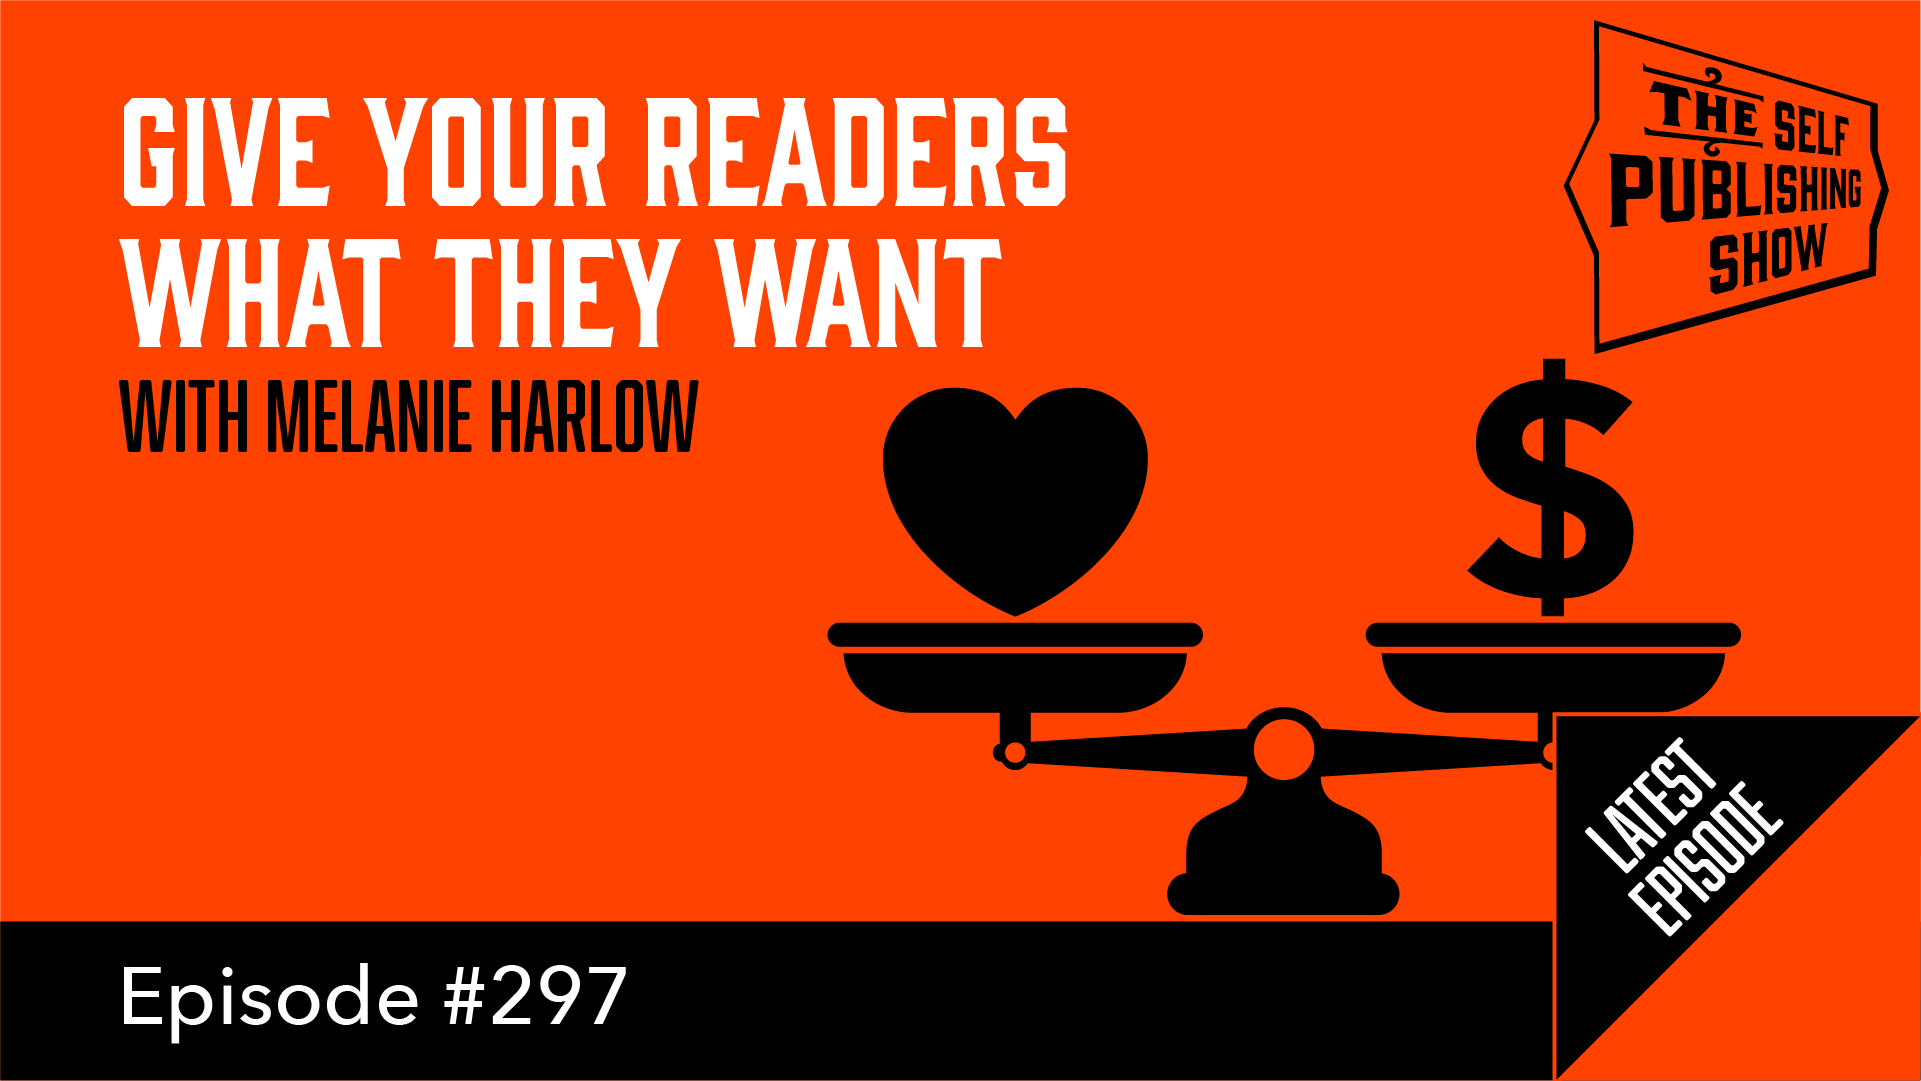 Give Your Readers What They Want - with Melanie Harlow